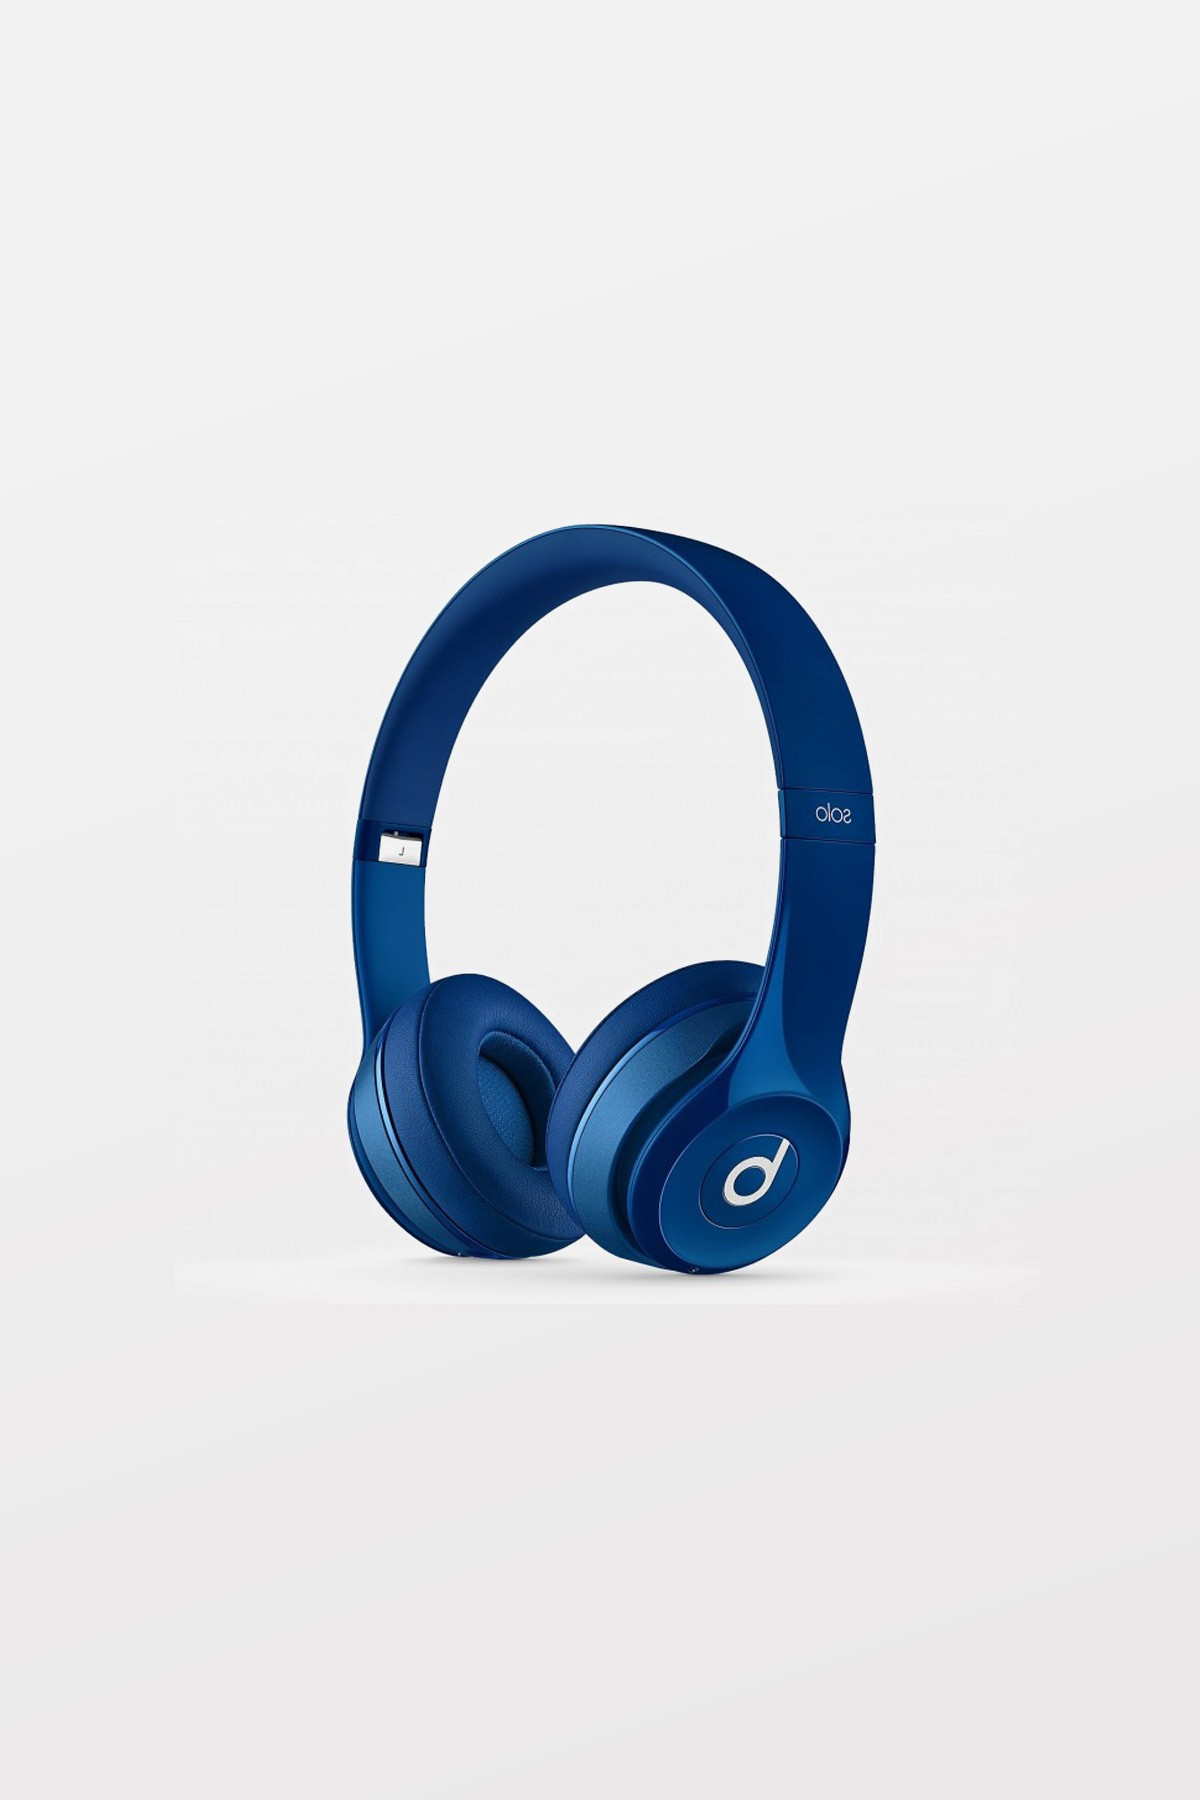 Beats By Dr Dre Solo2 Wireless - Blue - Refurbished